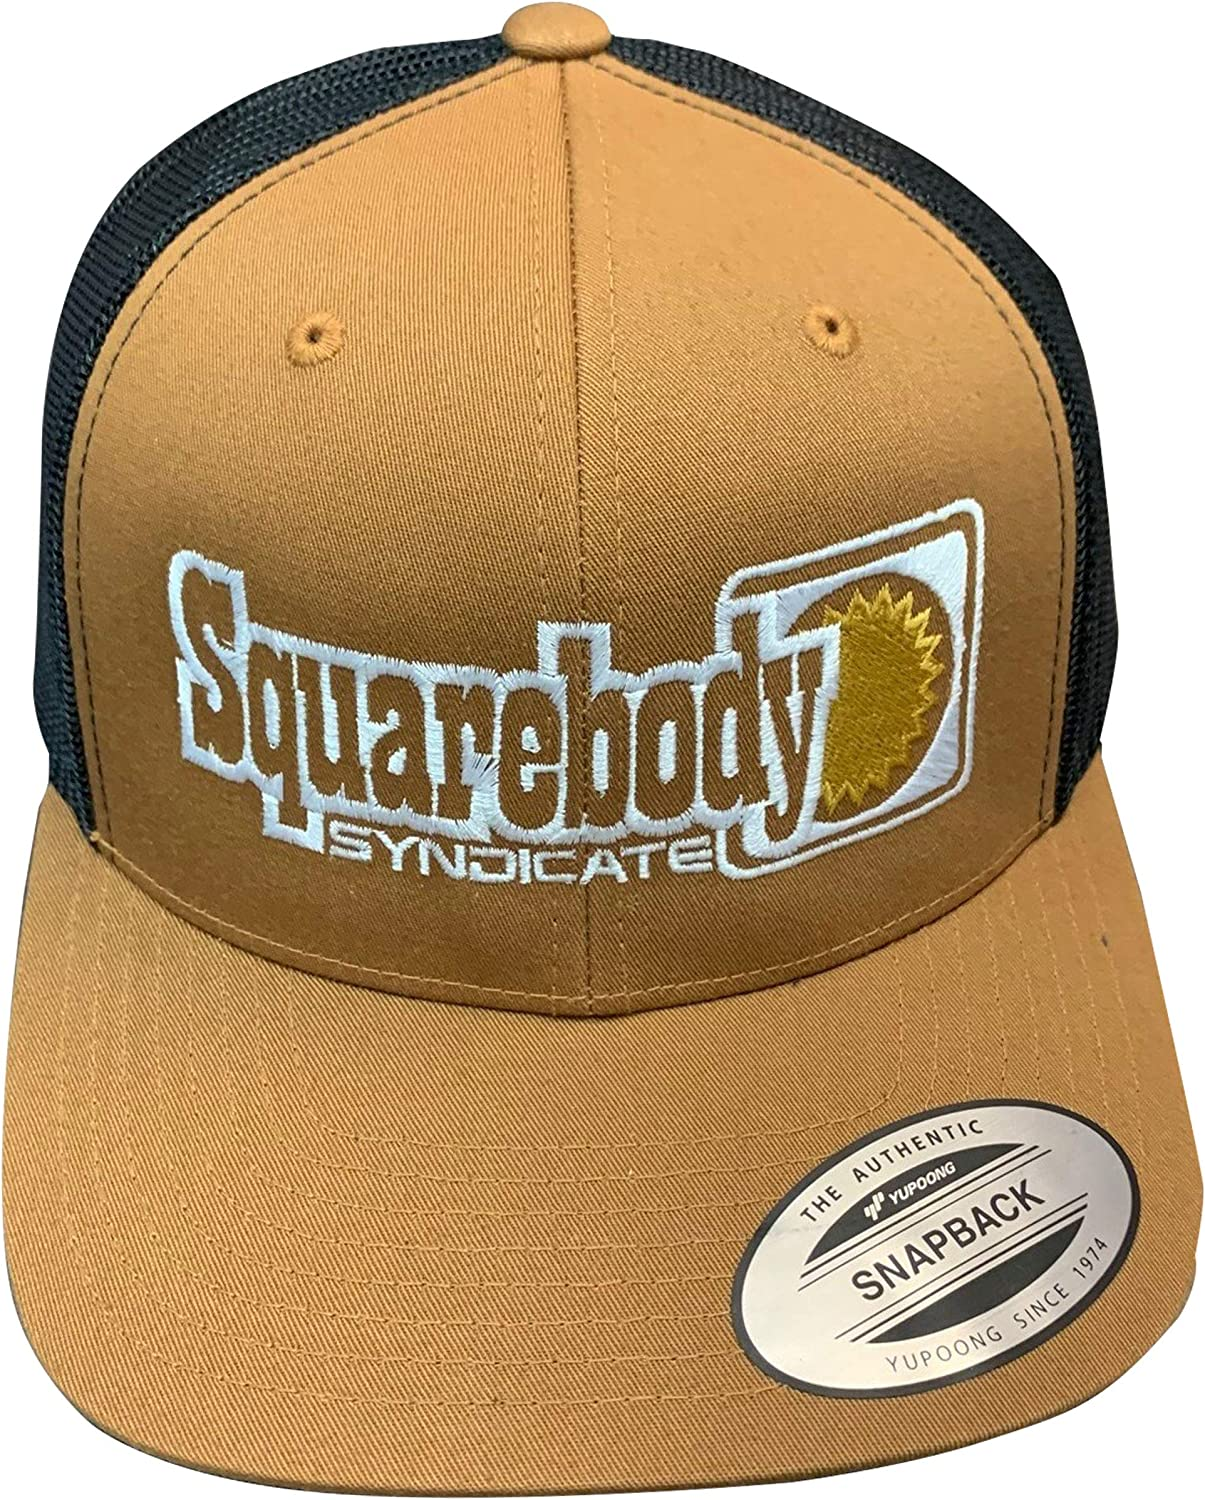 Squarebody Syndicate Camel and Brown Snapback Curved Bill Hat for Men